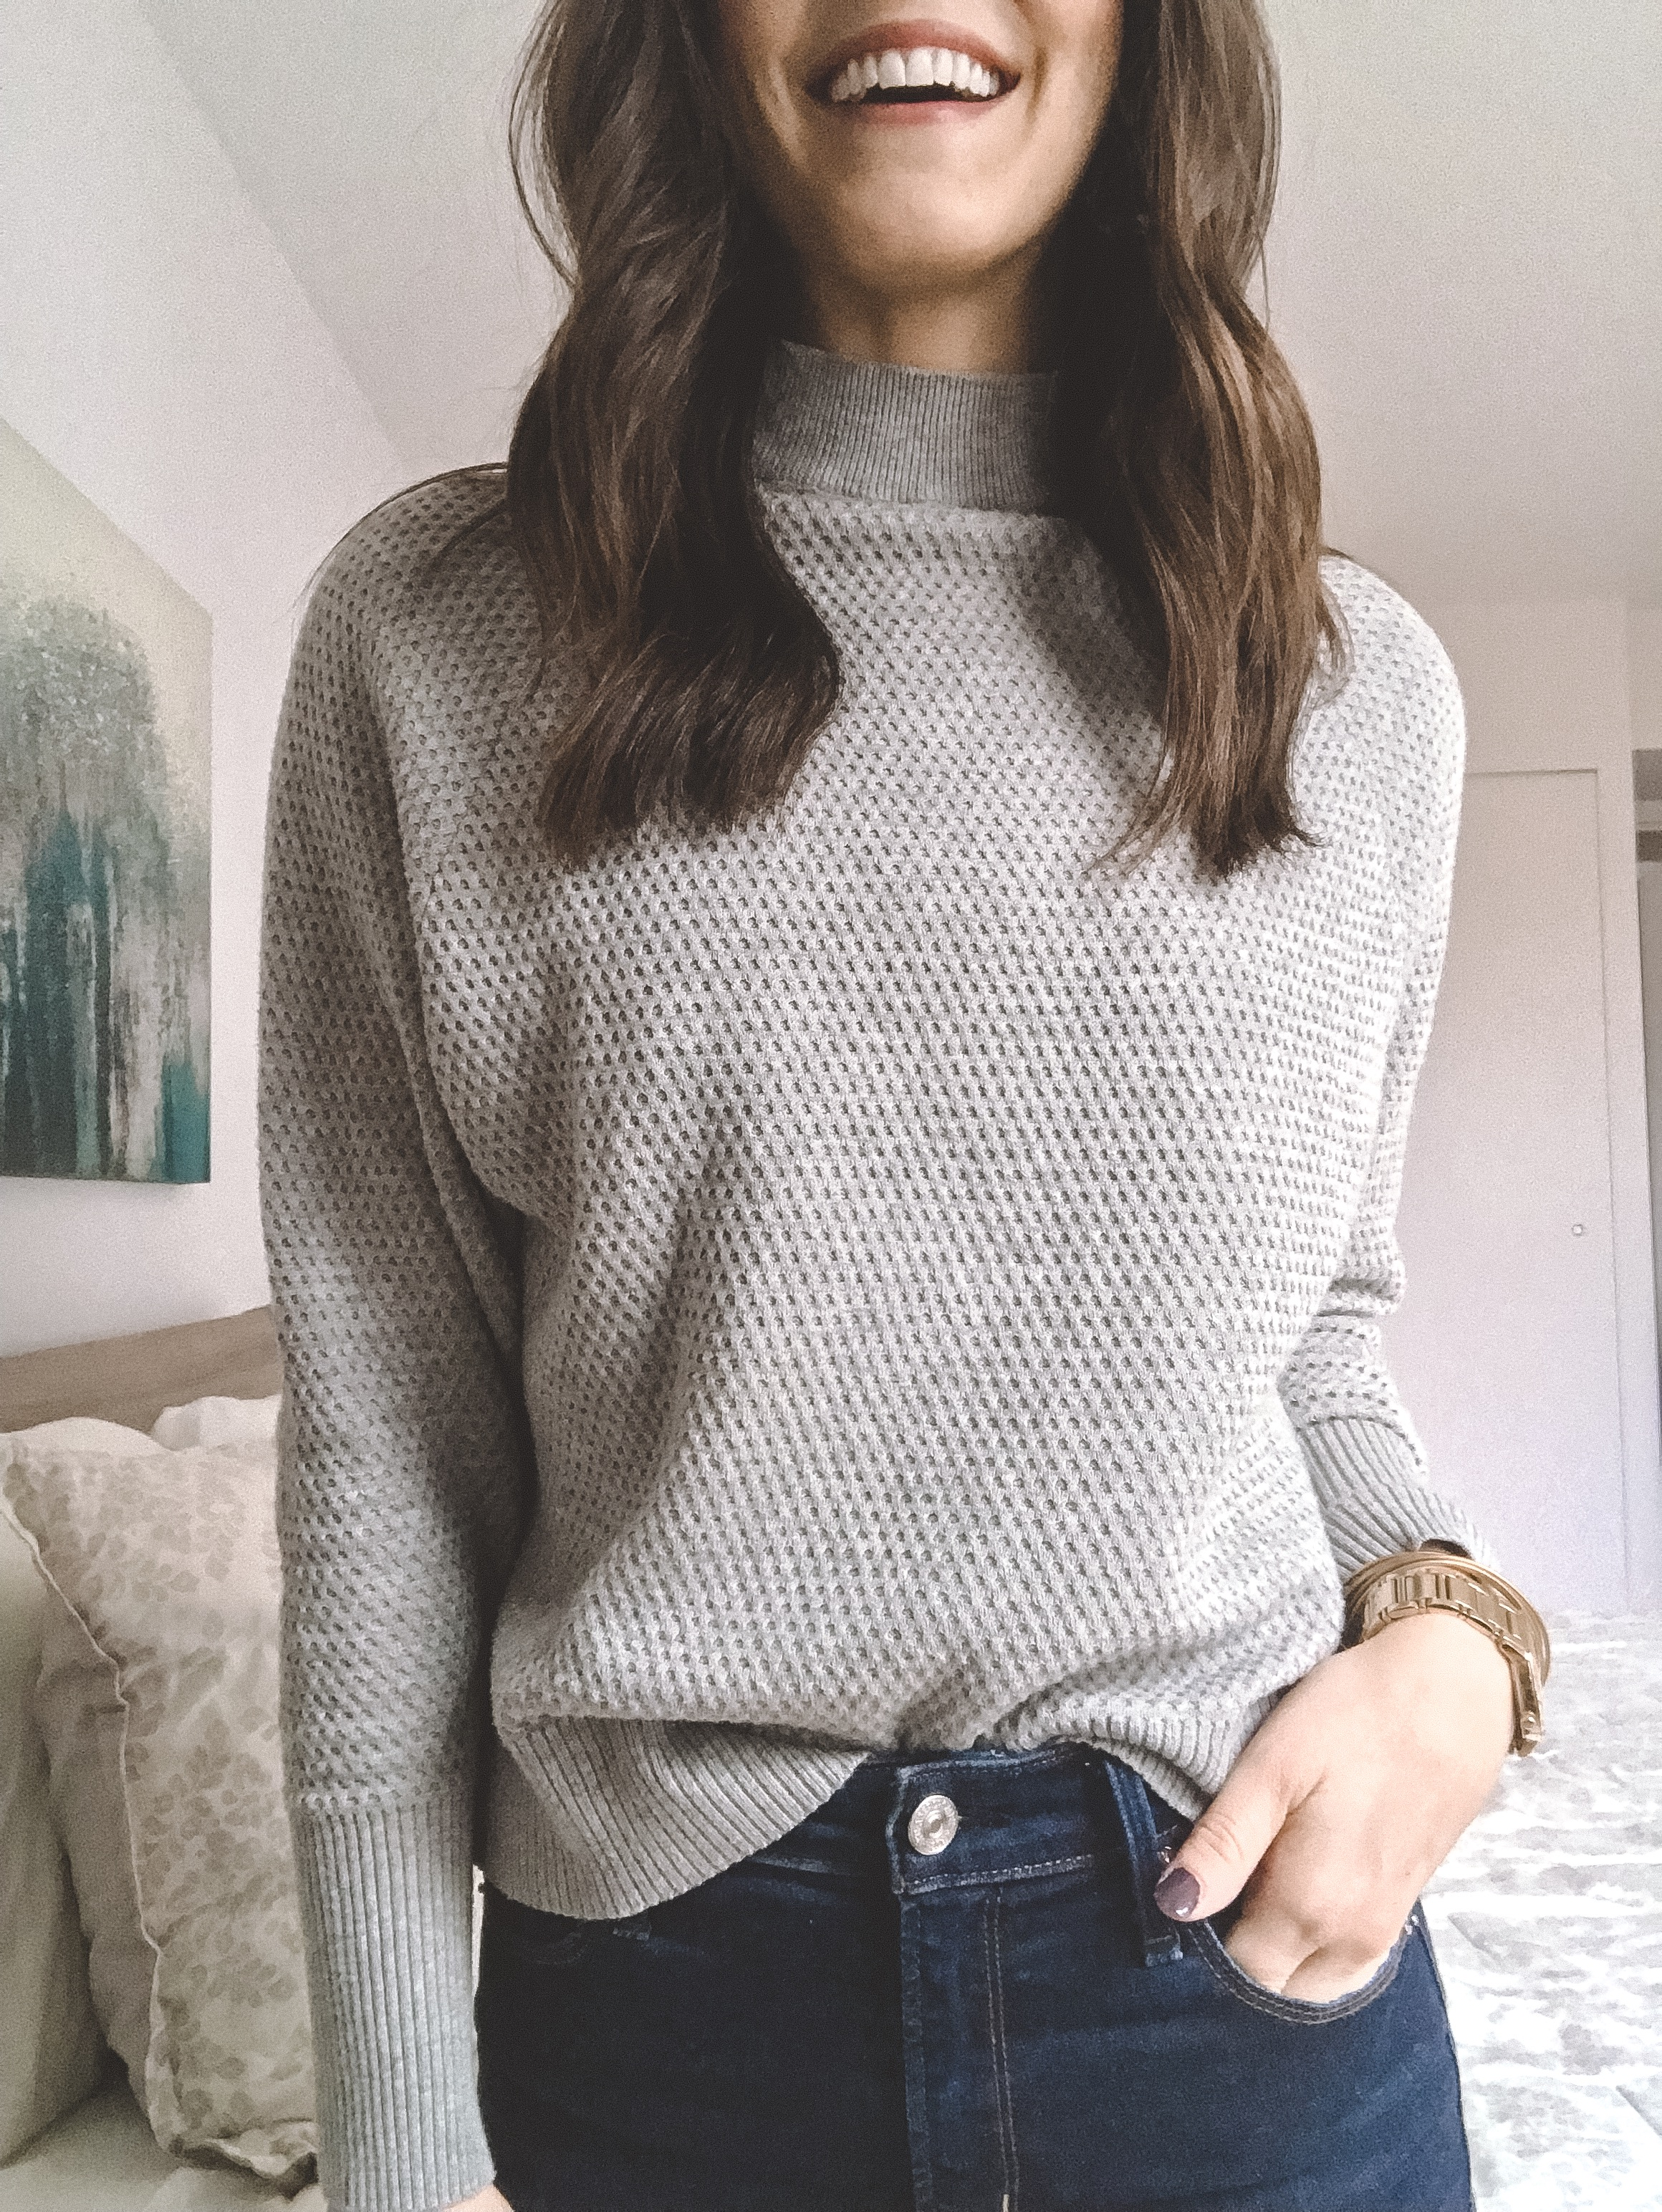 5 Sweaters I'm Loving For Fall — The Life She Wanders